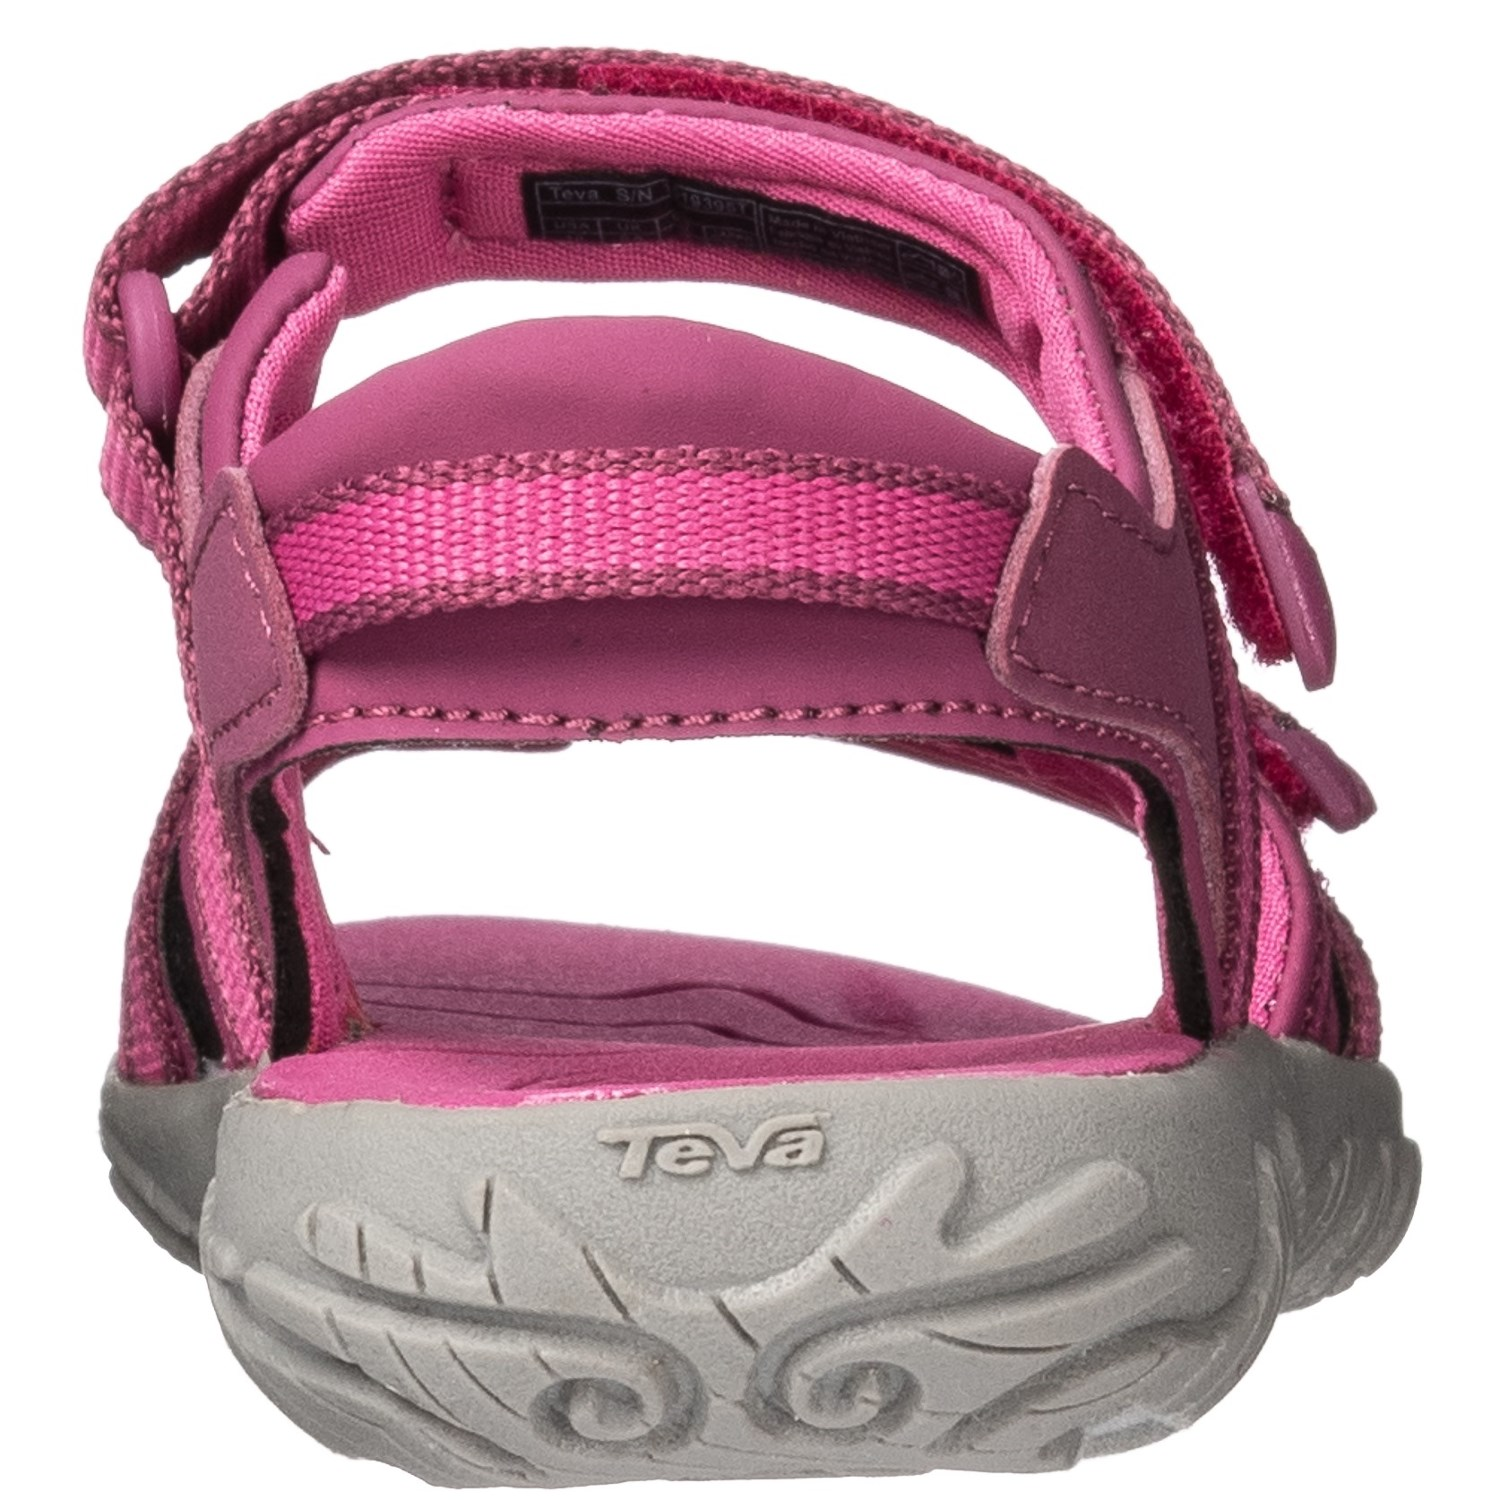 c413076dd3dace Teva Tirra Sport Sandals (For Girls) - Save 28%